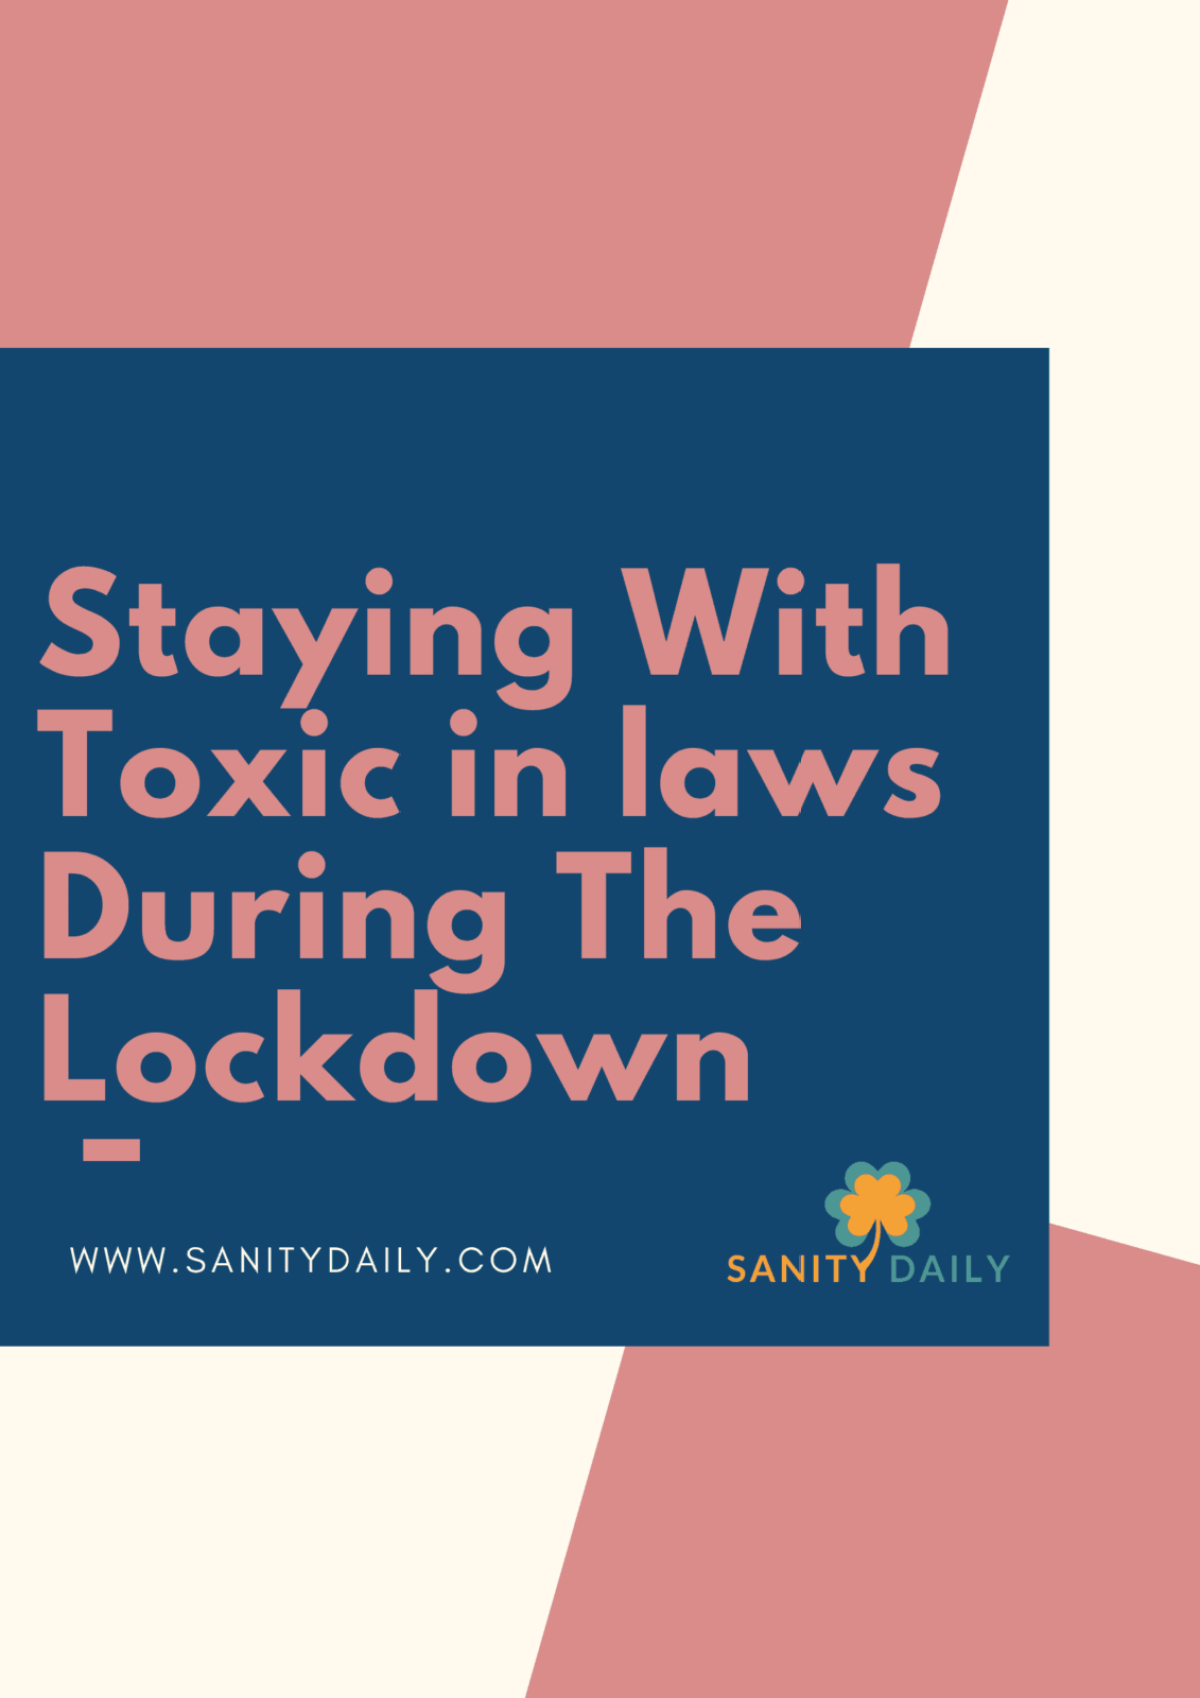 Staying with toxic in-laws during the lockdown